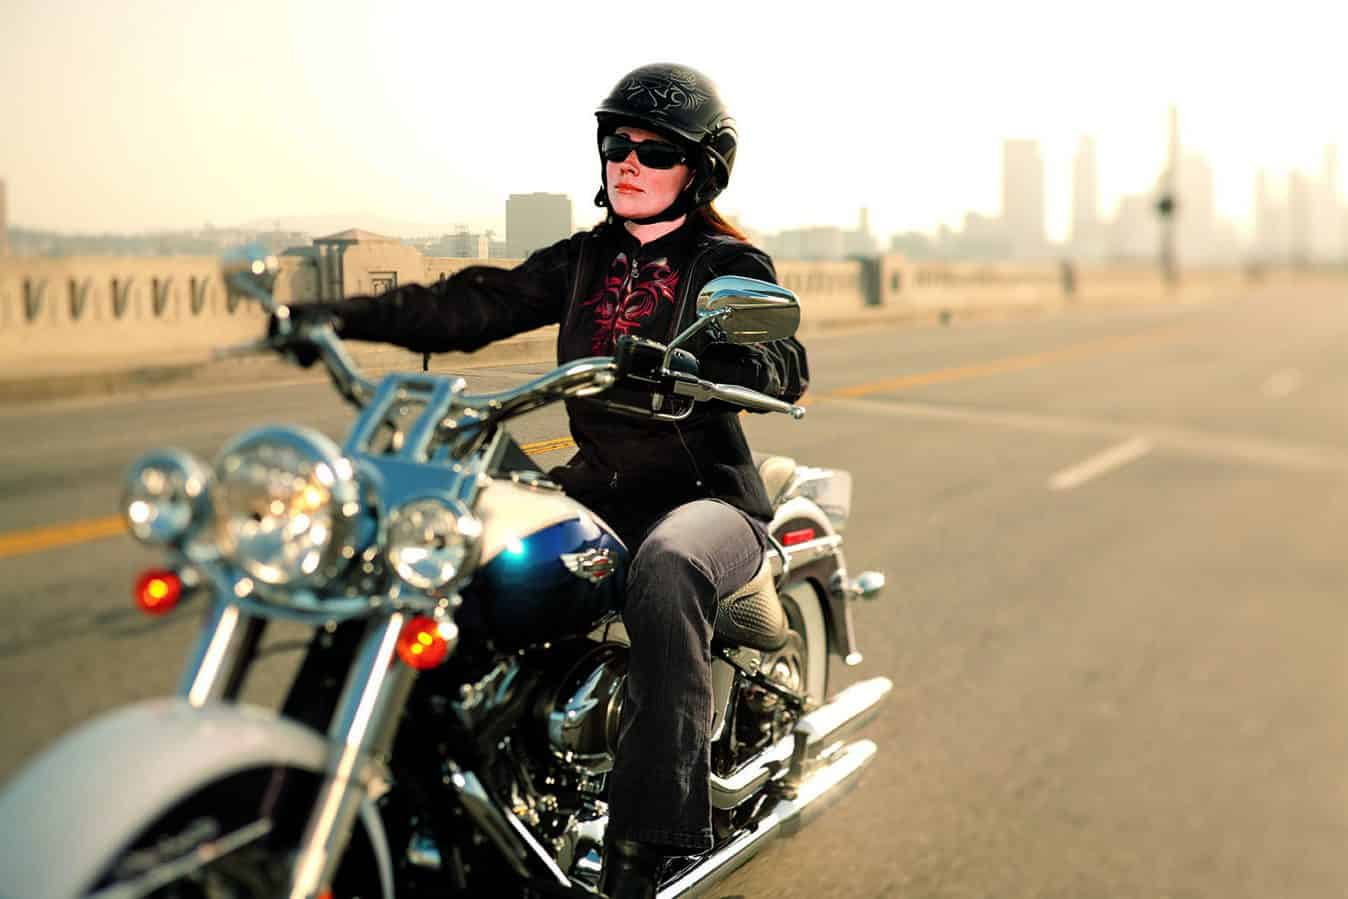 Andrea riding around the city on his motorcycle and with his new helmet.